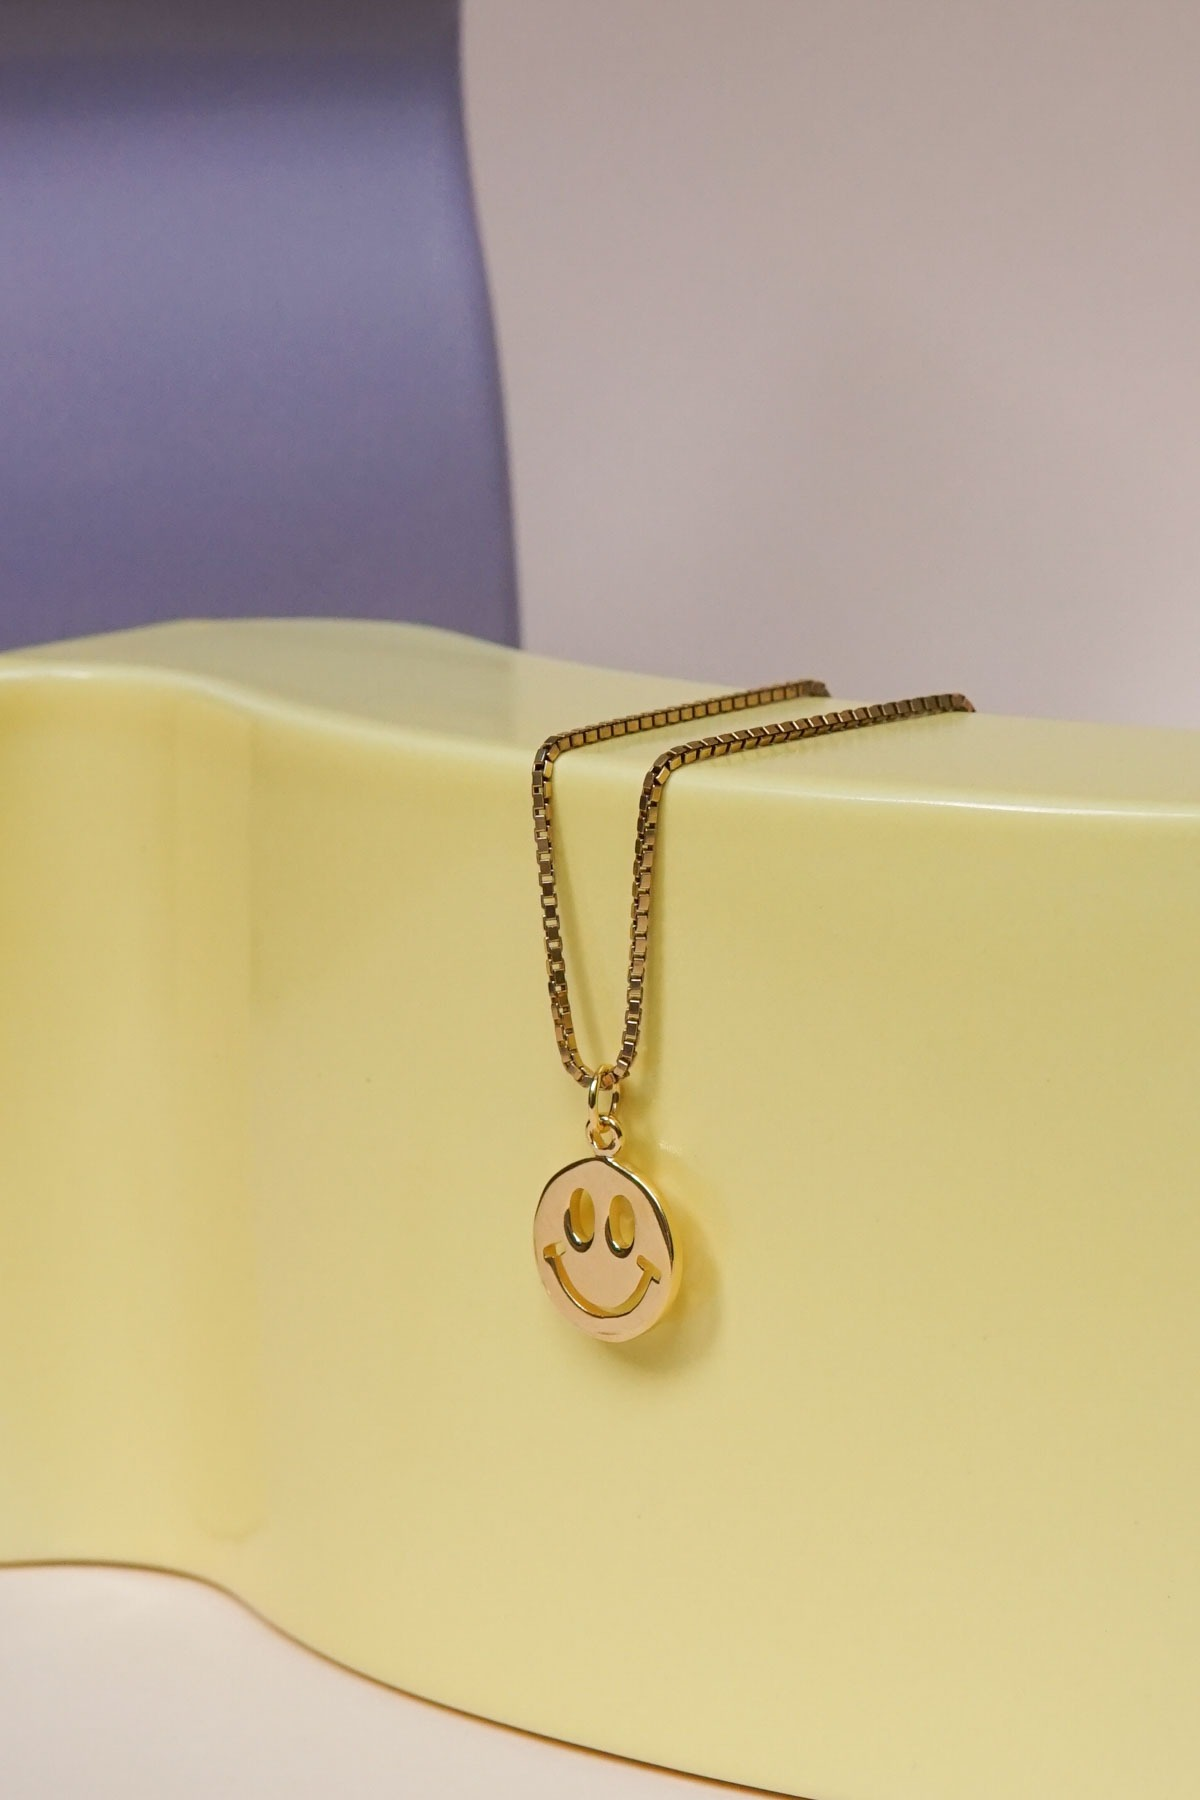 wildthings collectables Smiley pendant gold plated